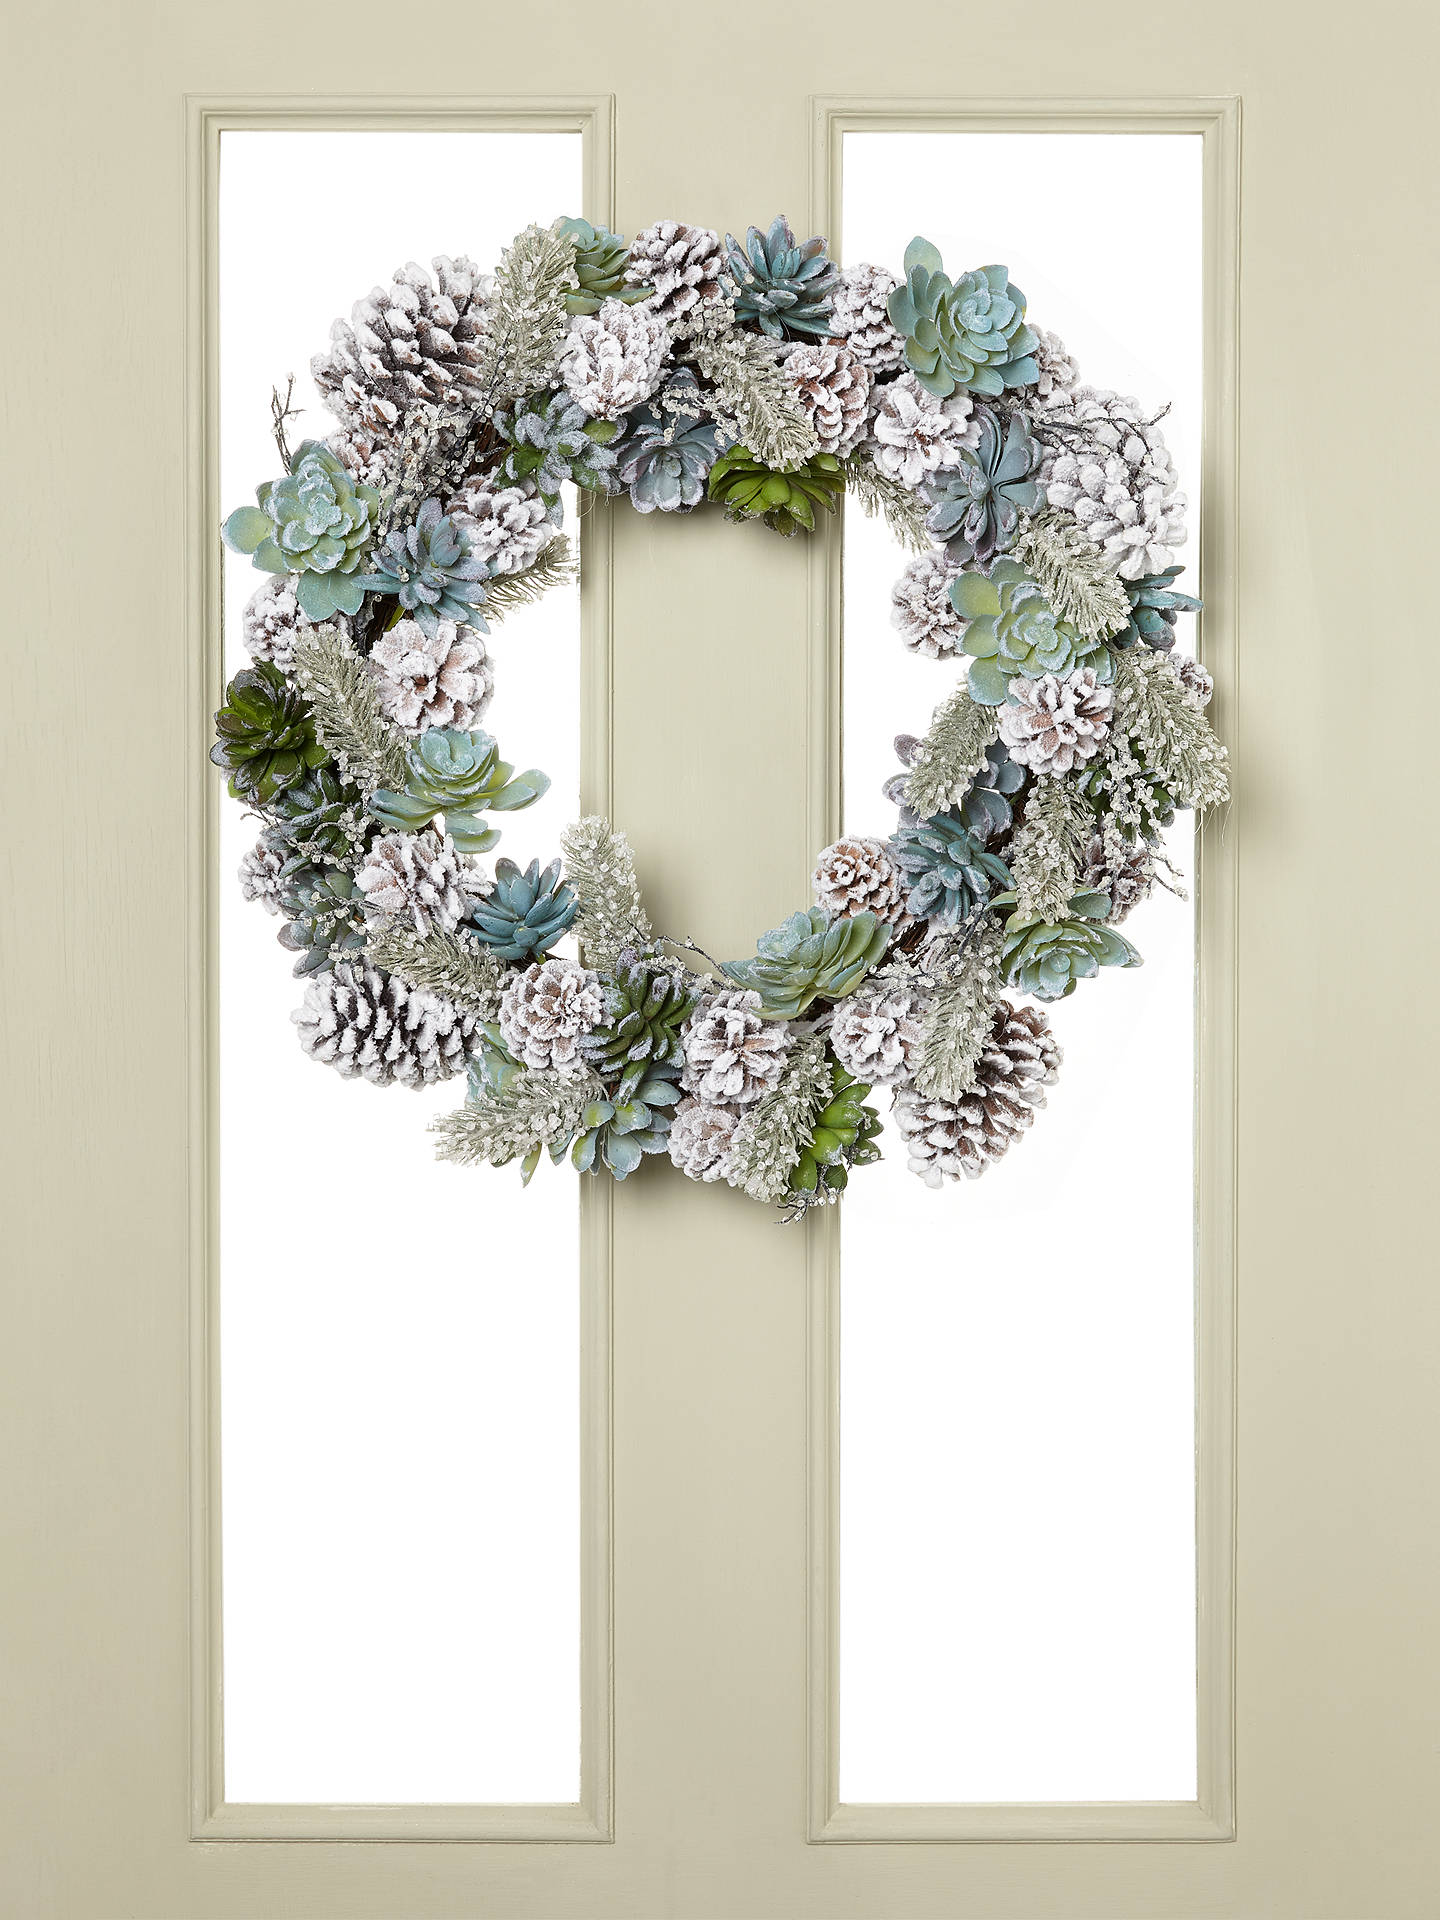 BuyJohn Lewis & Partners Emerald Frosted Succulent Wreath Online at johnlewis.com